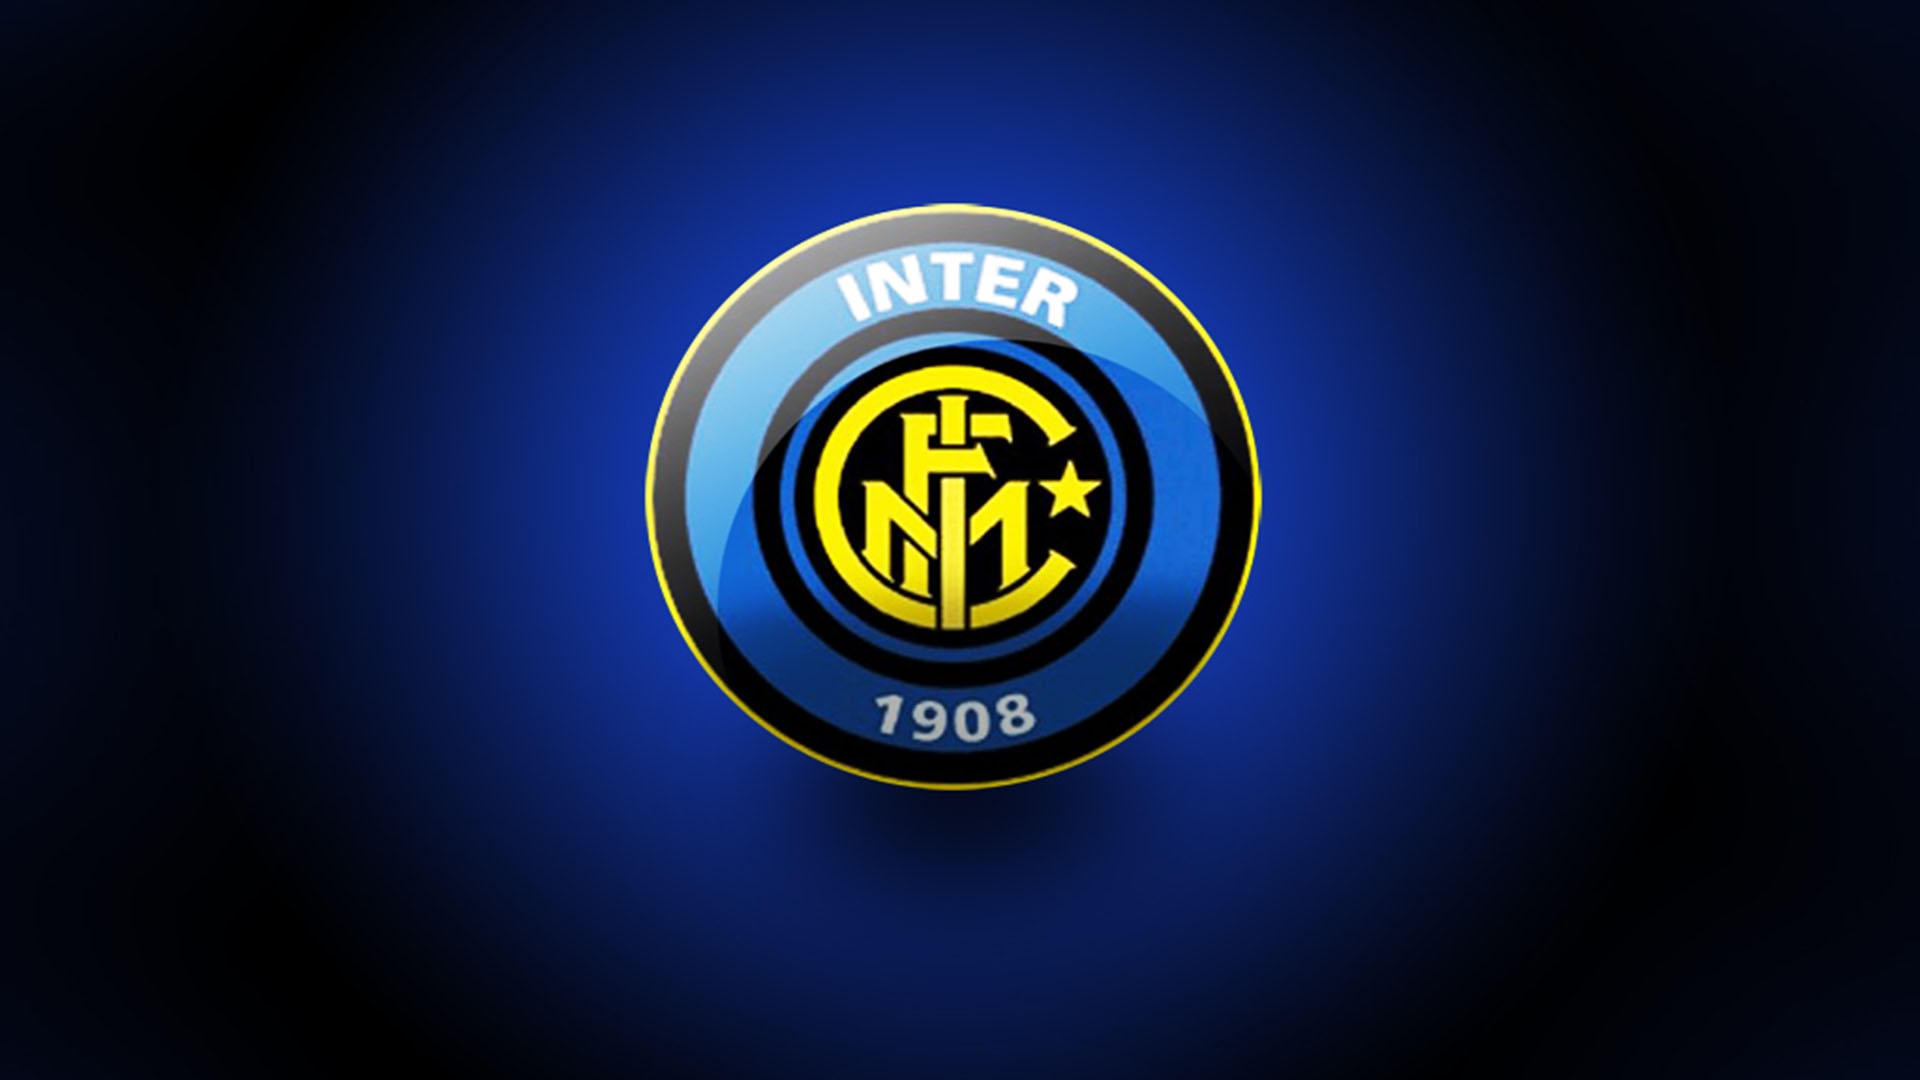 calcio hd wallpapers - photo #15